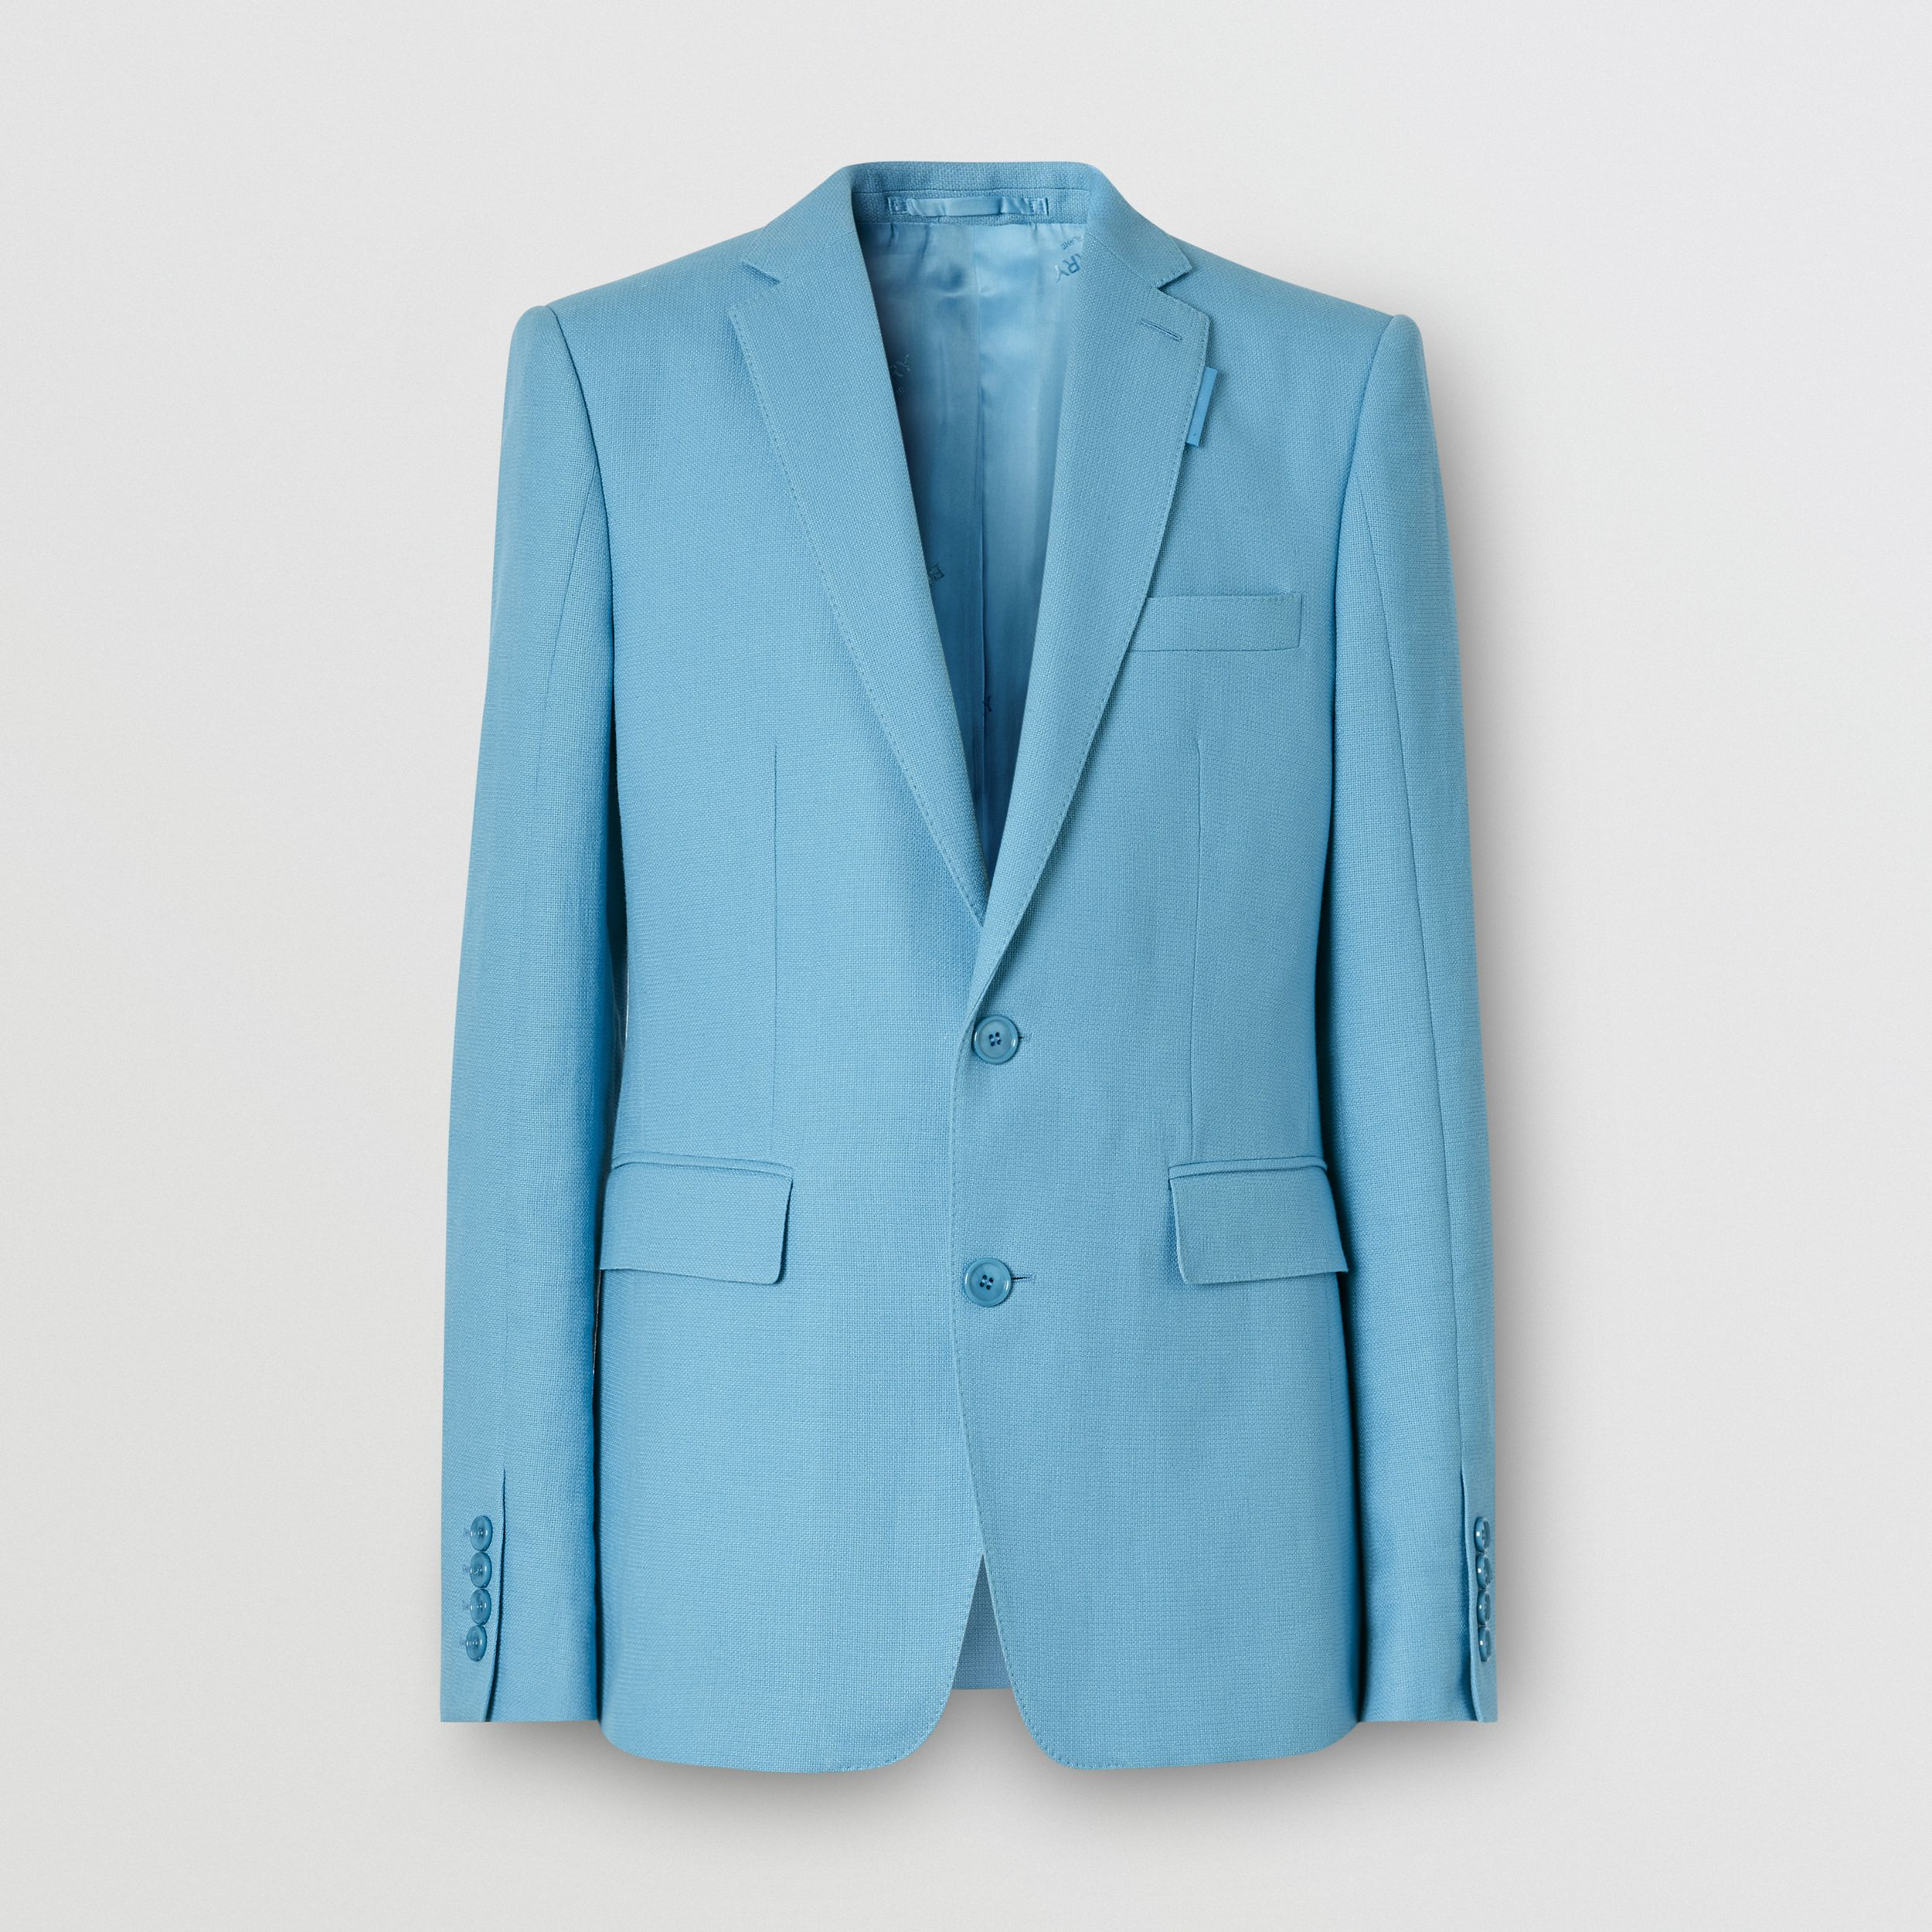 English Fit Wool Ramie Tailored Jacket in Blue Topaz | Burberry - 4